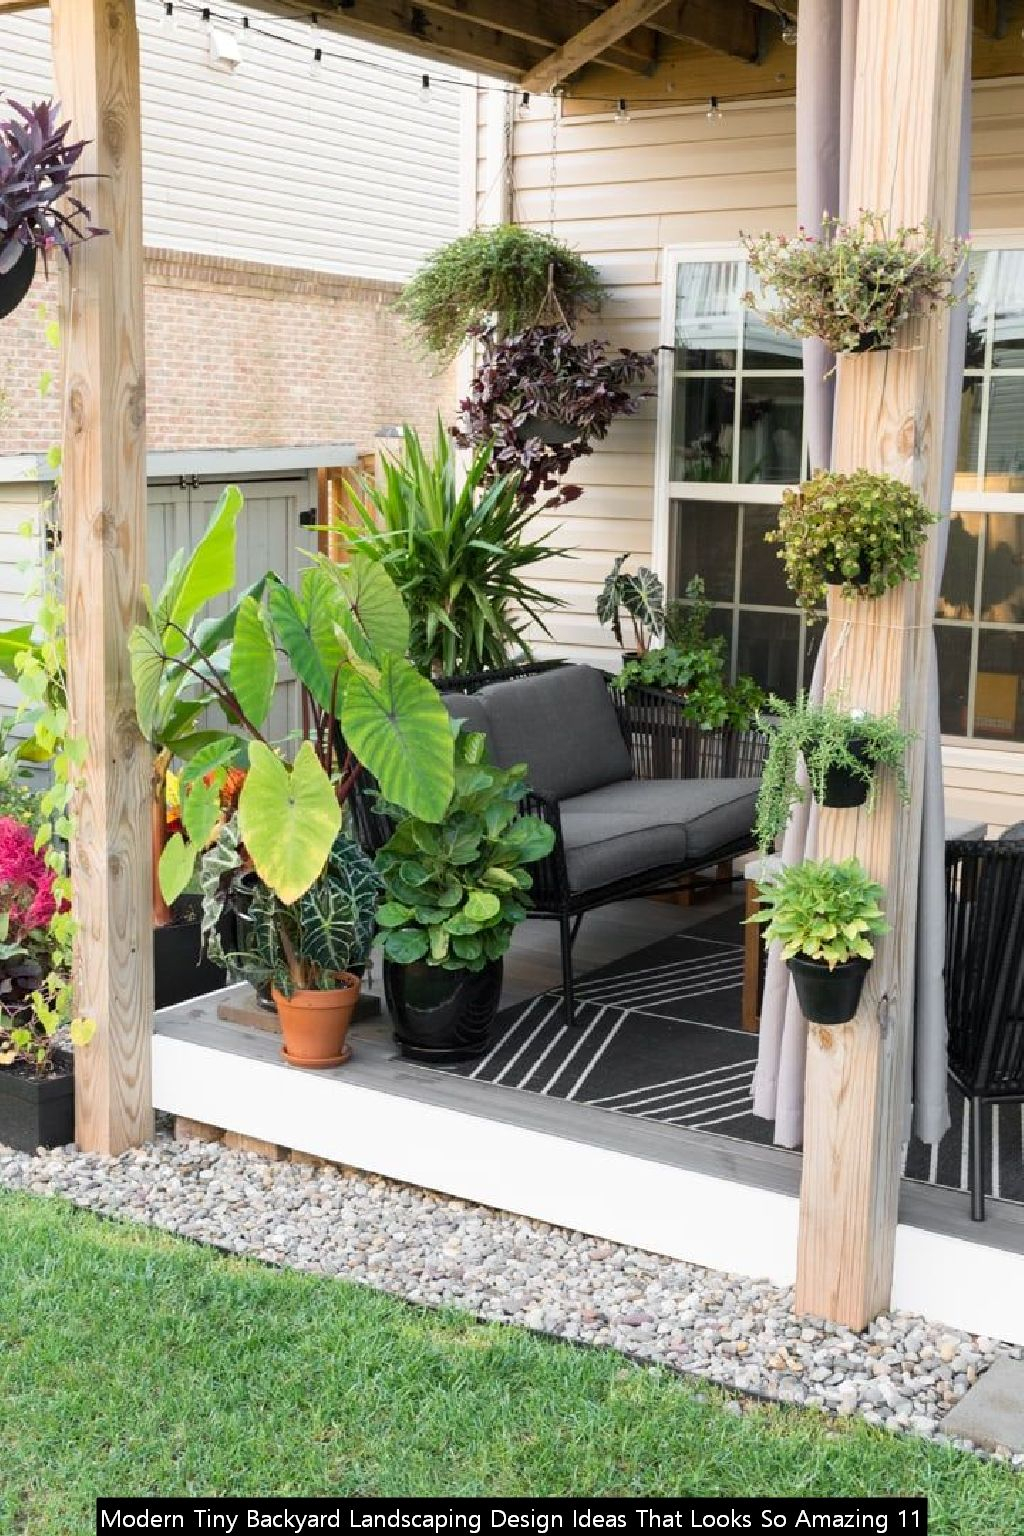 Modern Tiny Backyard Landscaping Design Ideas That Looks So Amazing 11